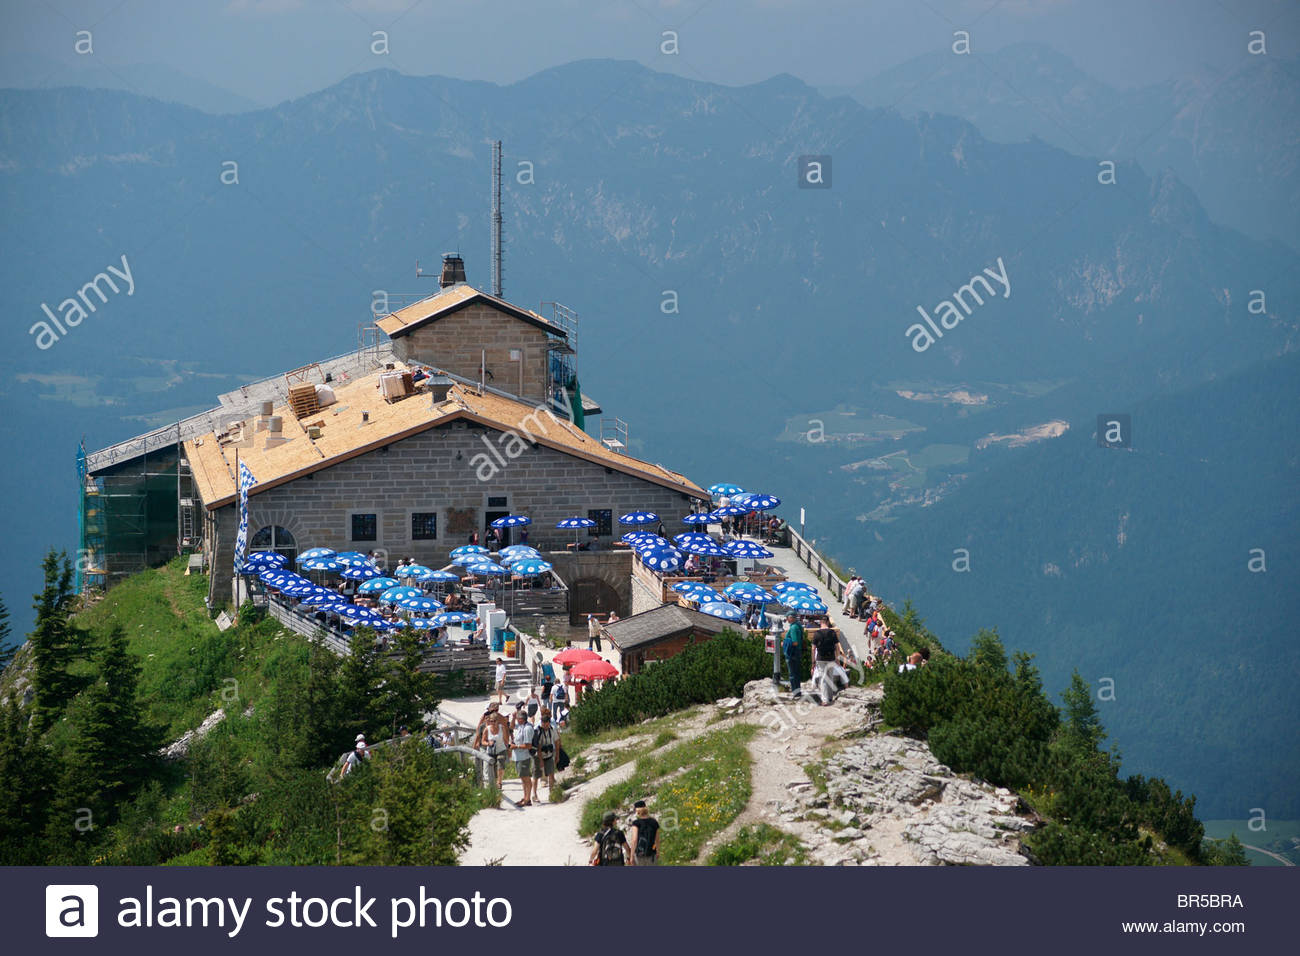 Hitler's Bunkers The Bavarian Alps, Views from Adolf Hilter mountain top home in the Bavarian Alps ...